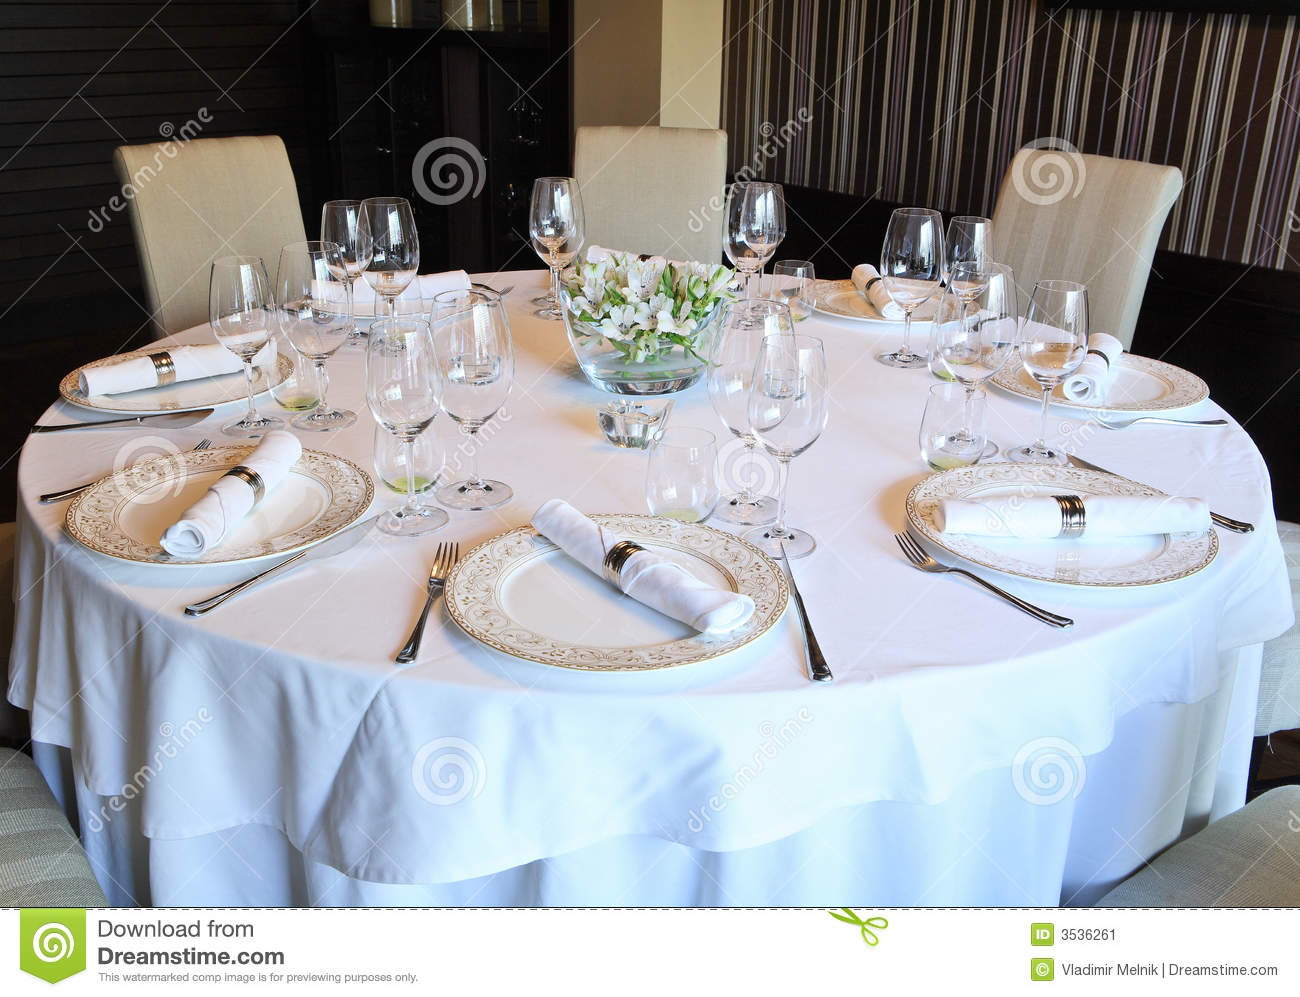 How To Set A Dinner Table fancy dinner table set stock image - image: 10392131